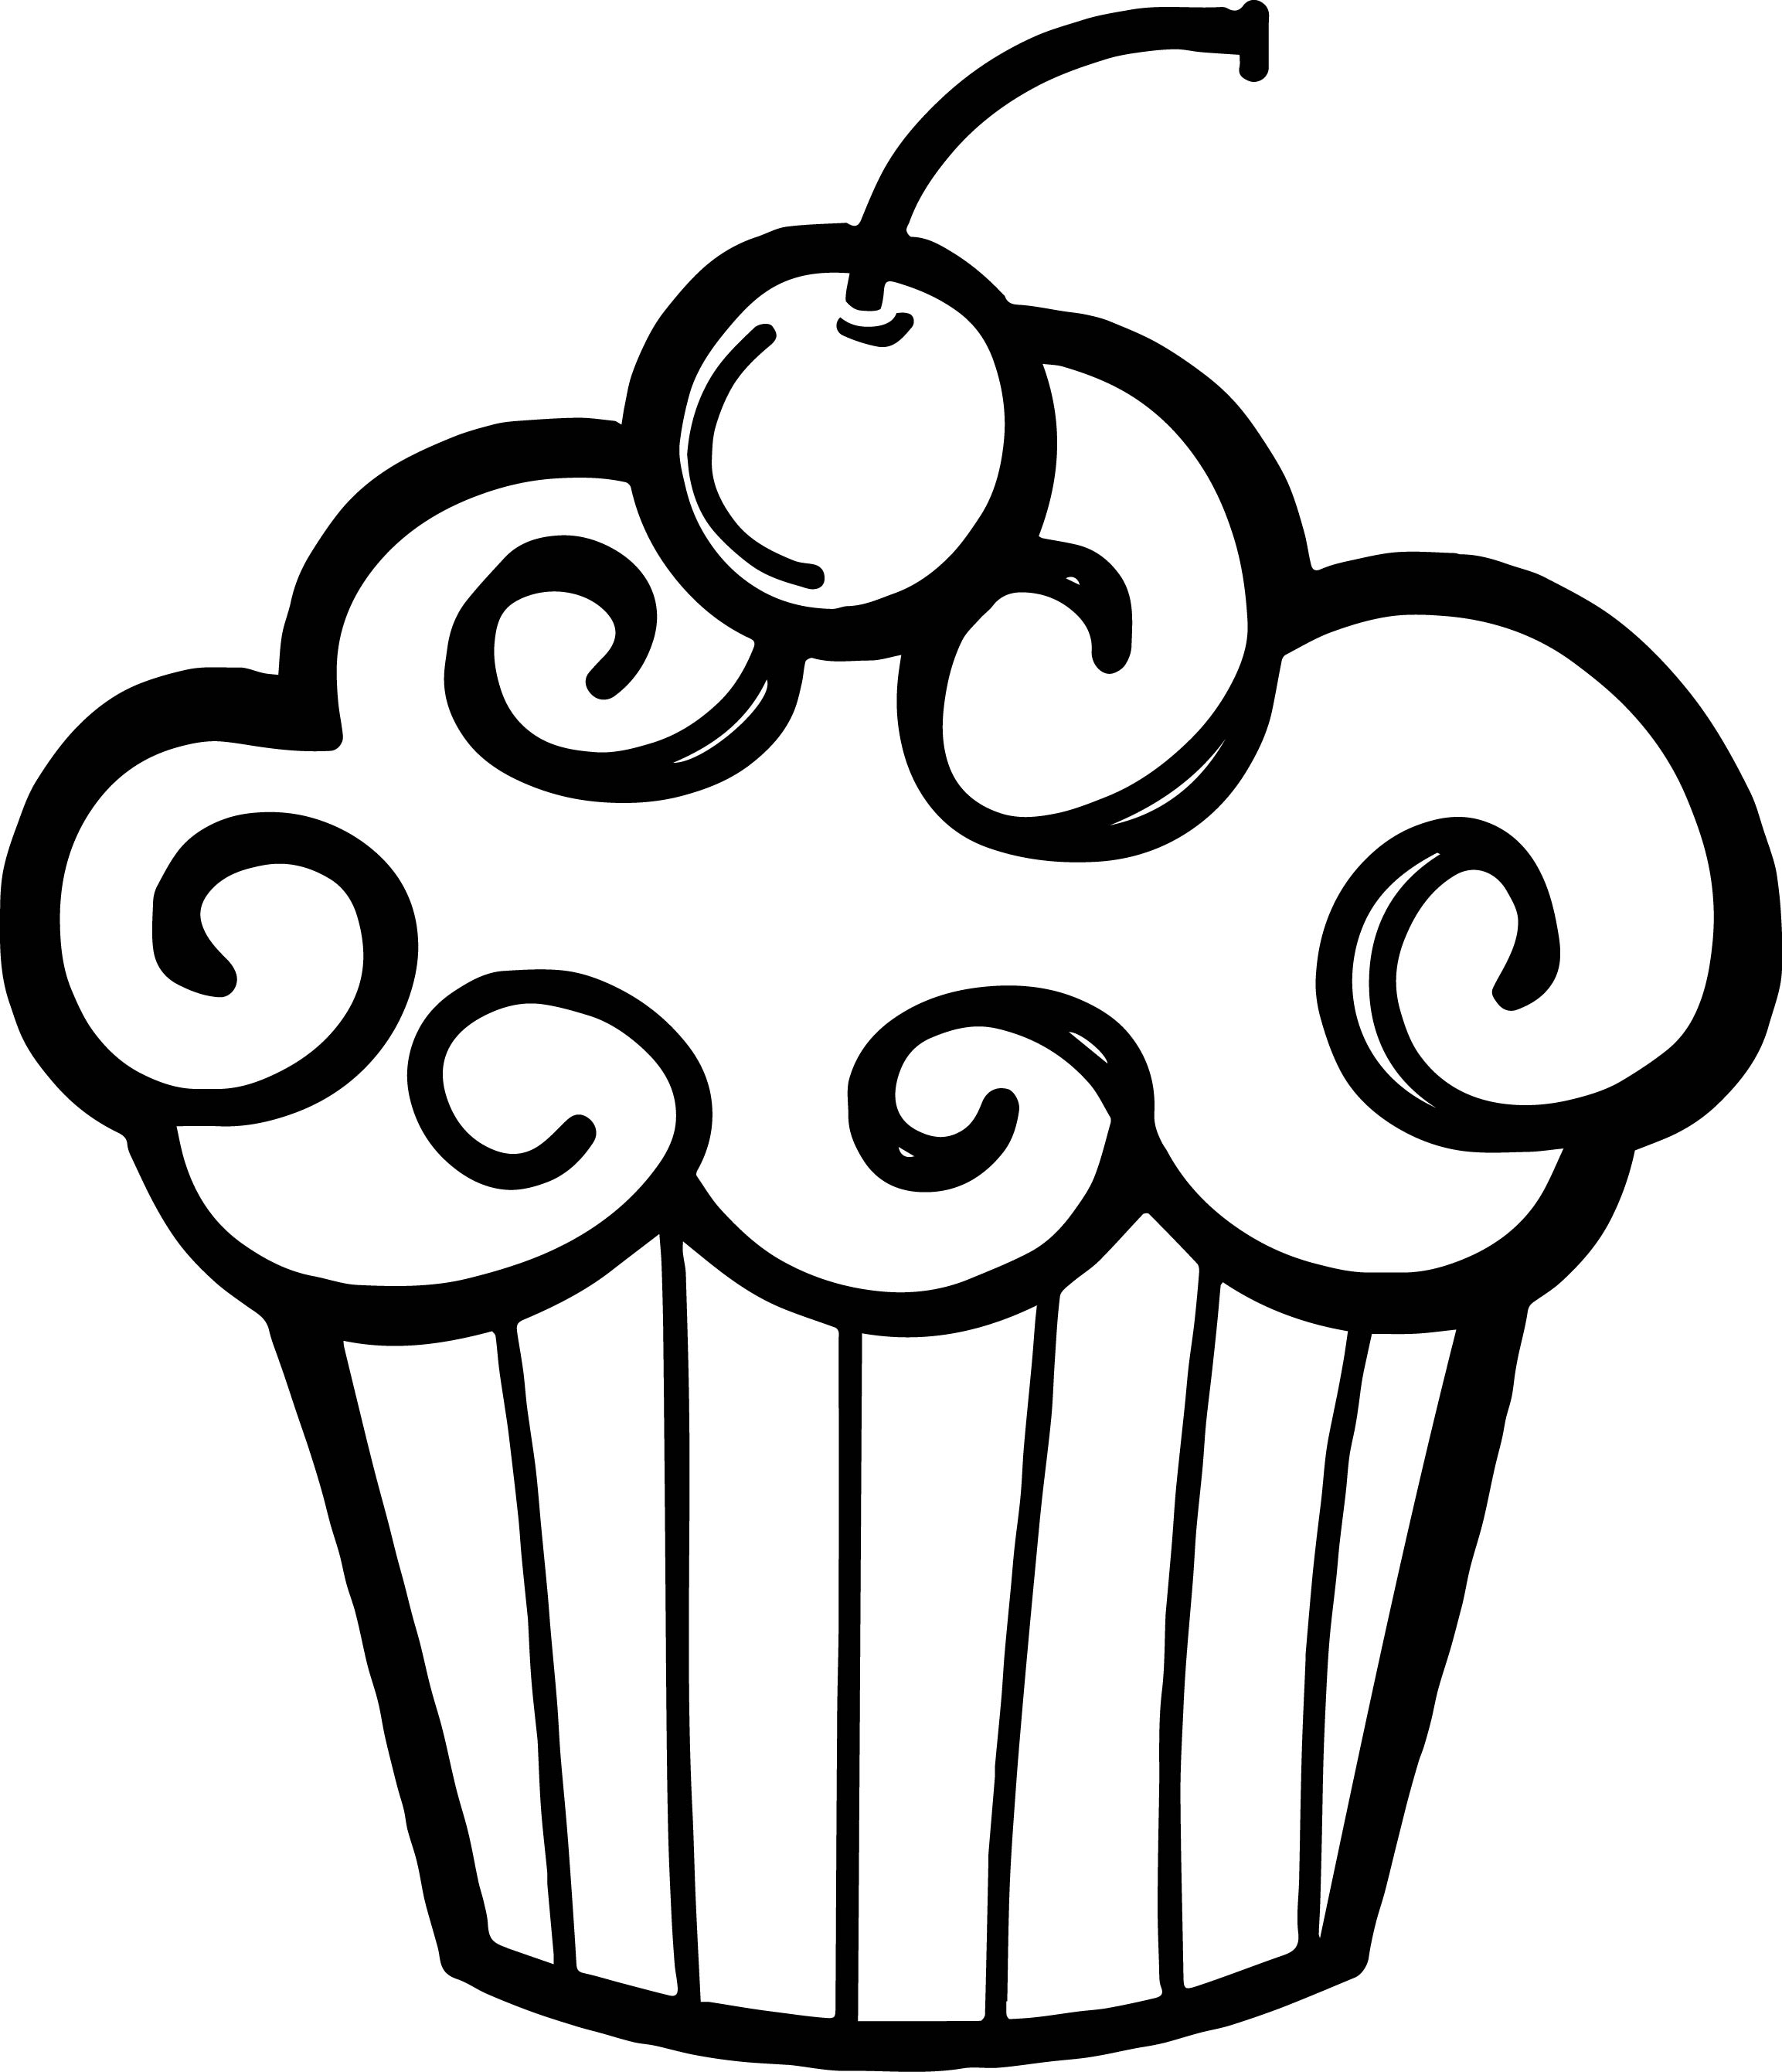 2306x2681 Black And White Cupcake Drawing Cupcake Clipart Black And White